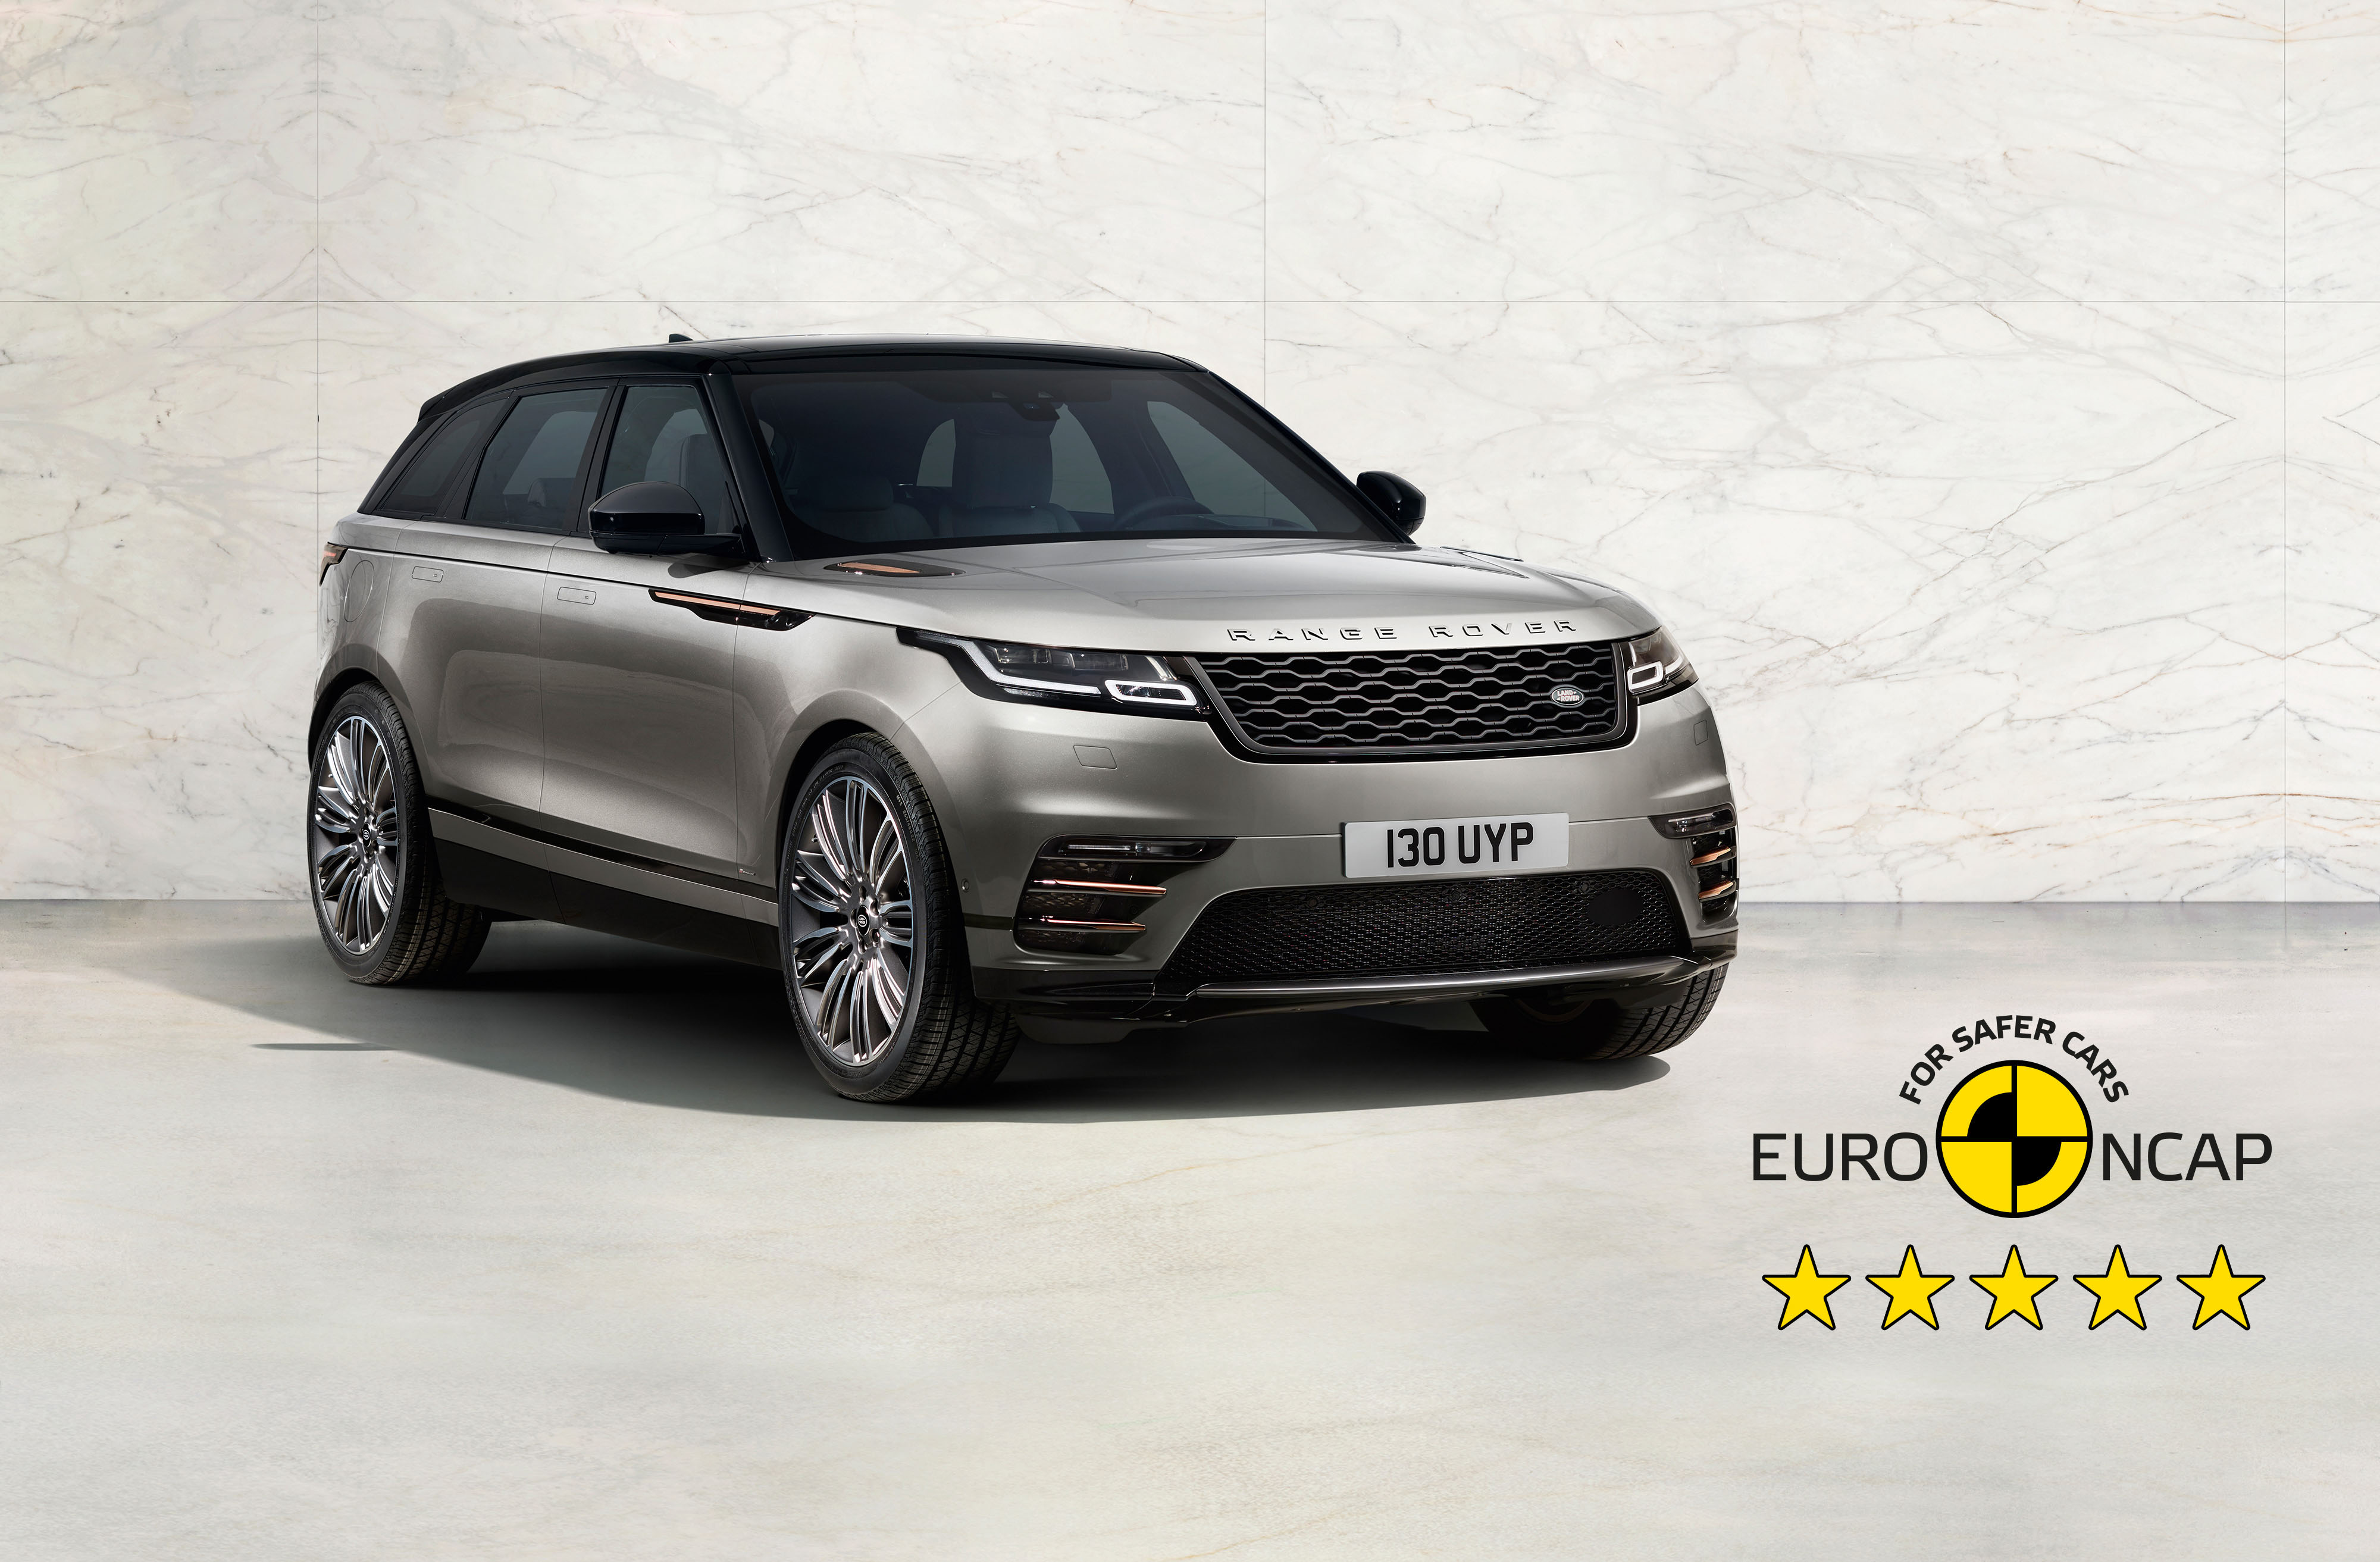 The Range Rover Velar has achieved a five-star Euro NCAP rating